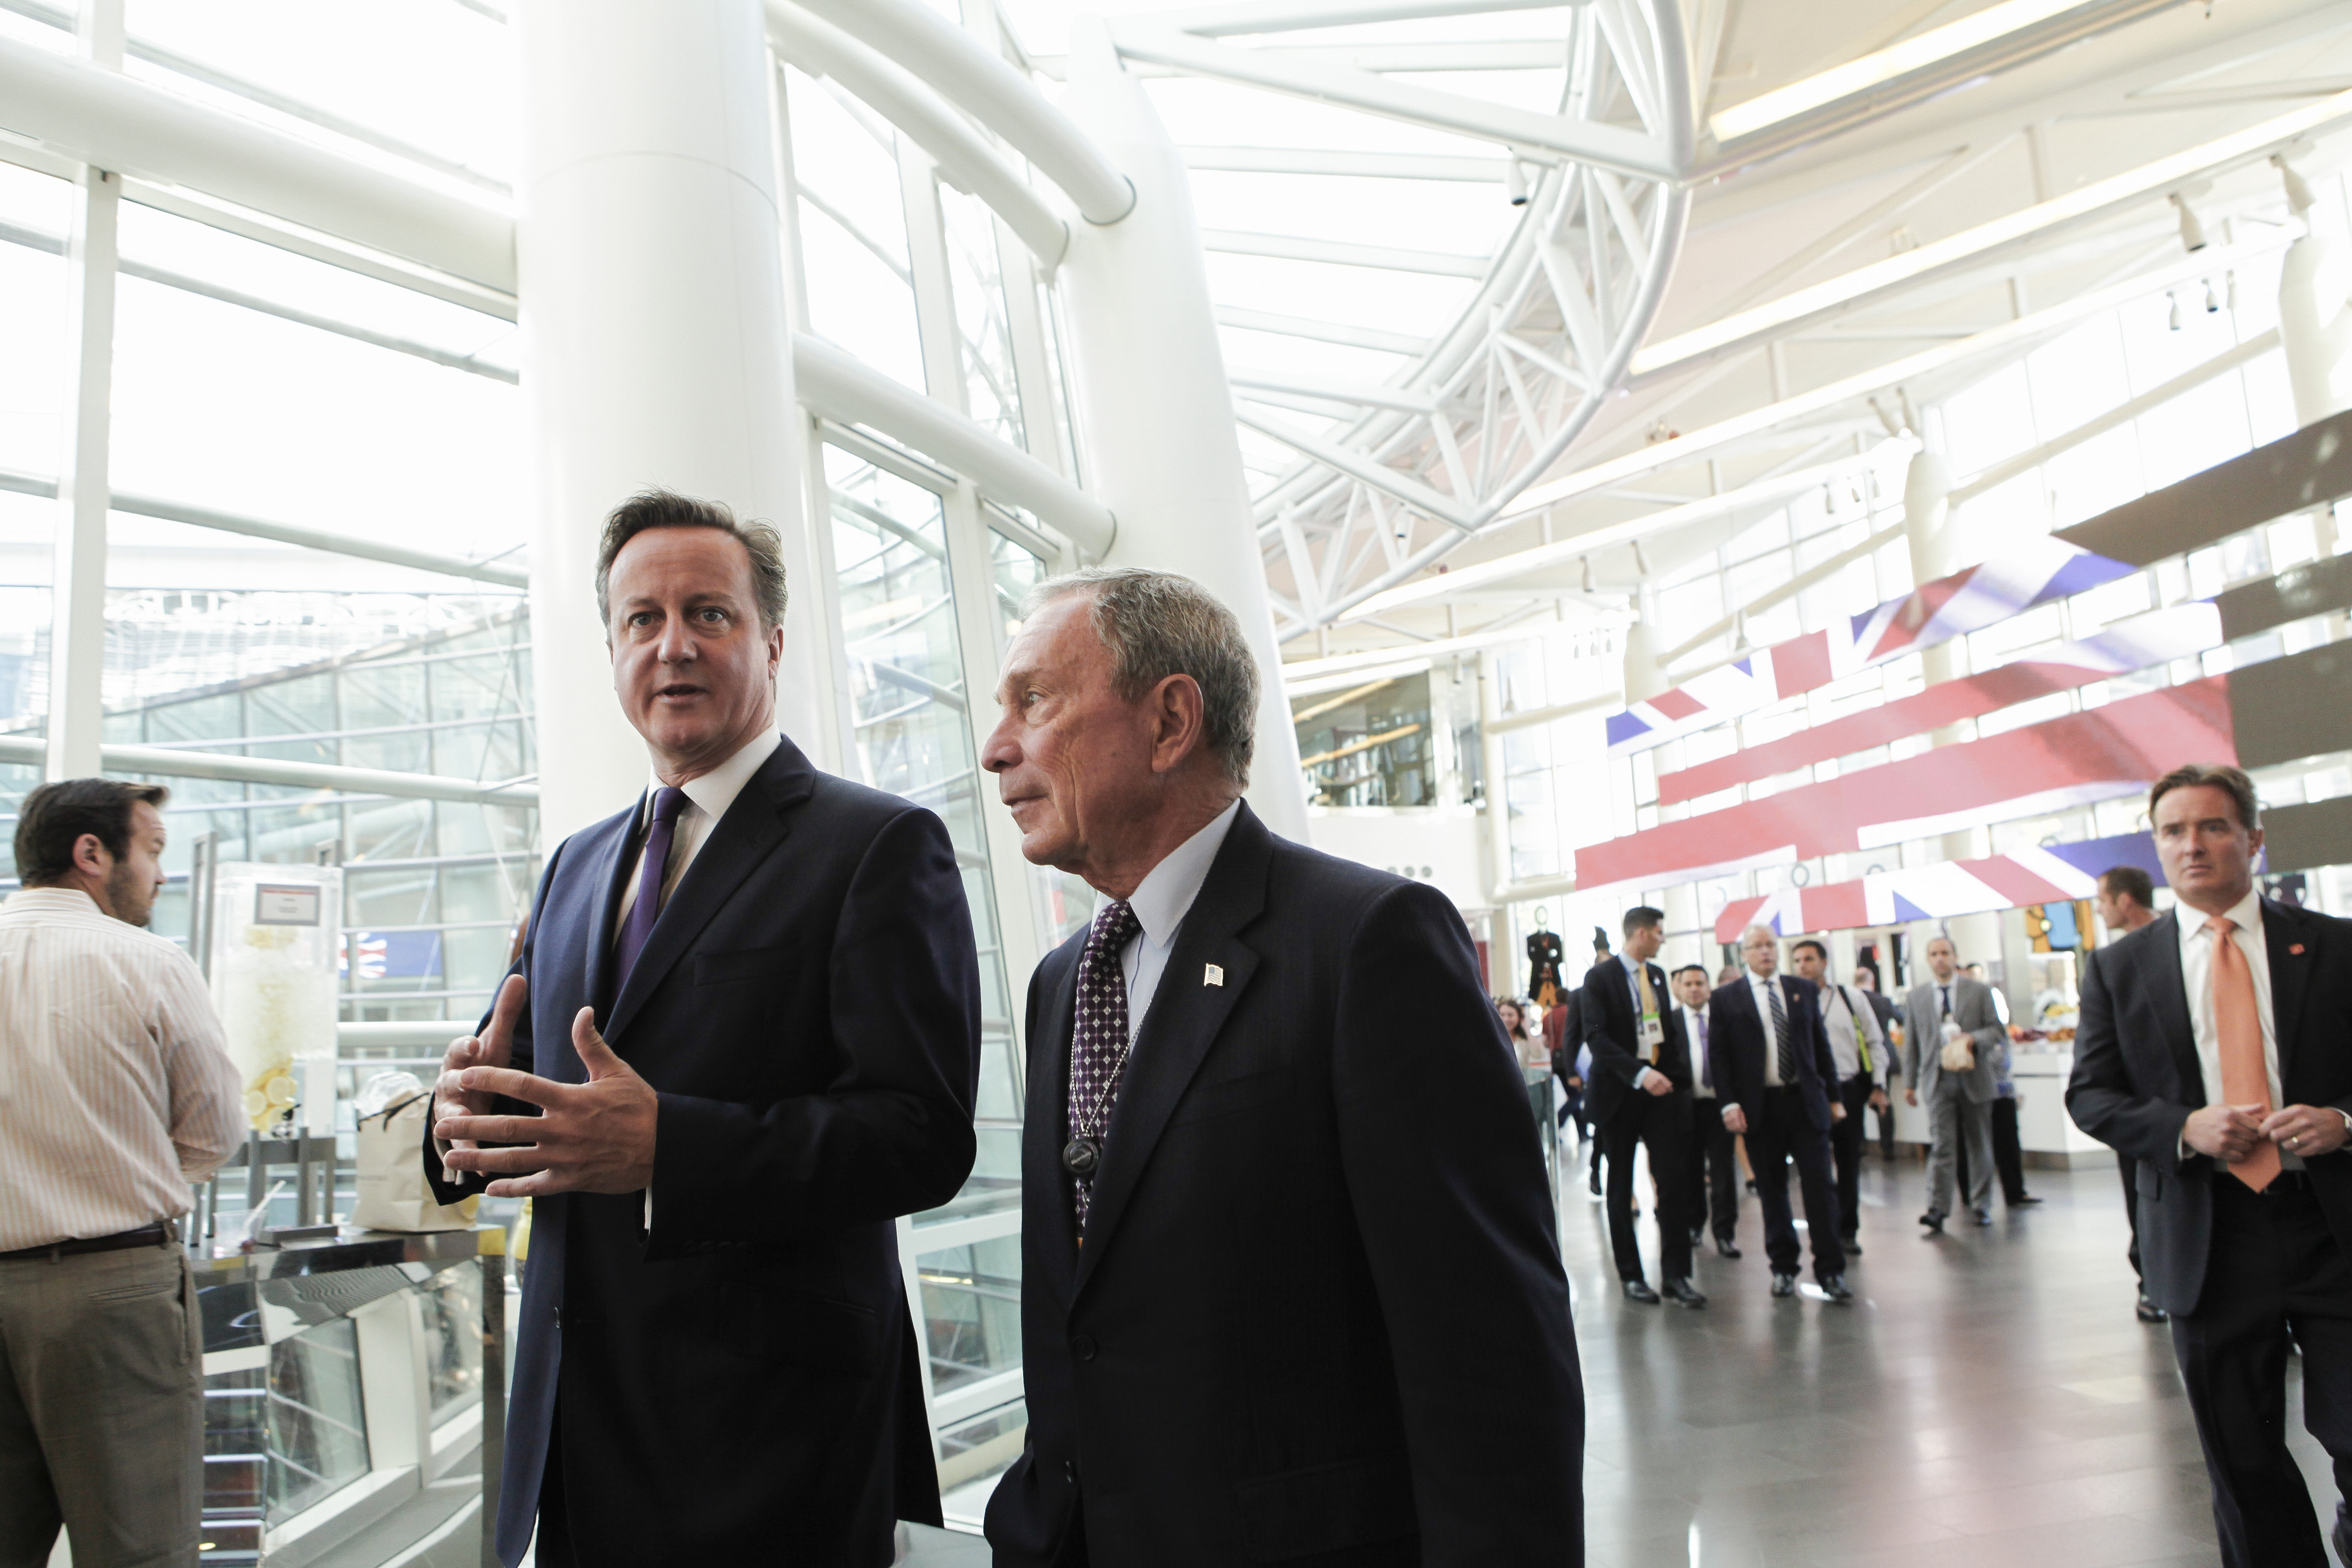 British Prime Minister David Cameron speaks with Michael  Bloomberg, founder of Bloomberg LP at Bloomberg LP headquarters on Sept. 23, 2014 in New York City.